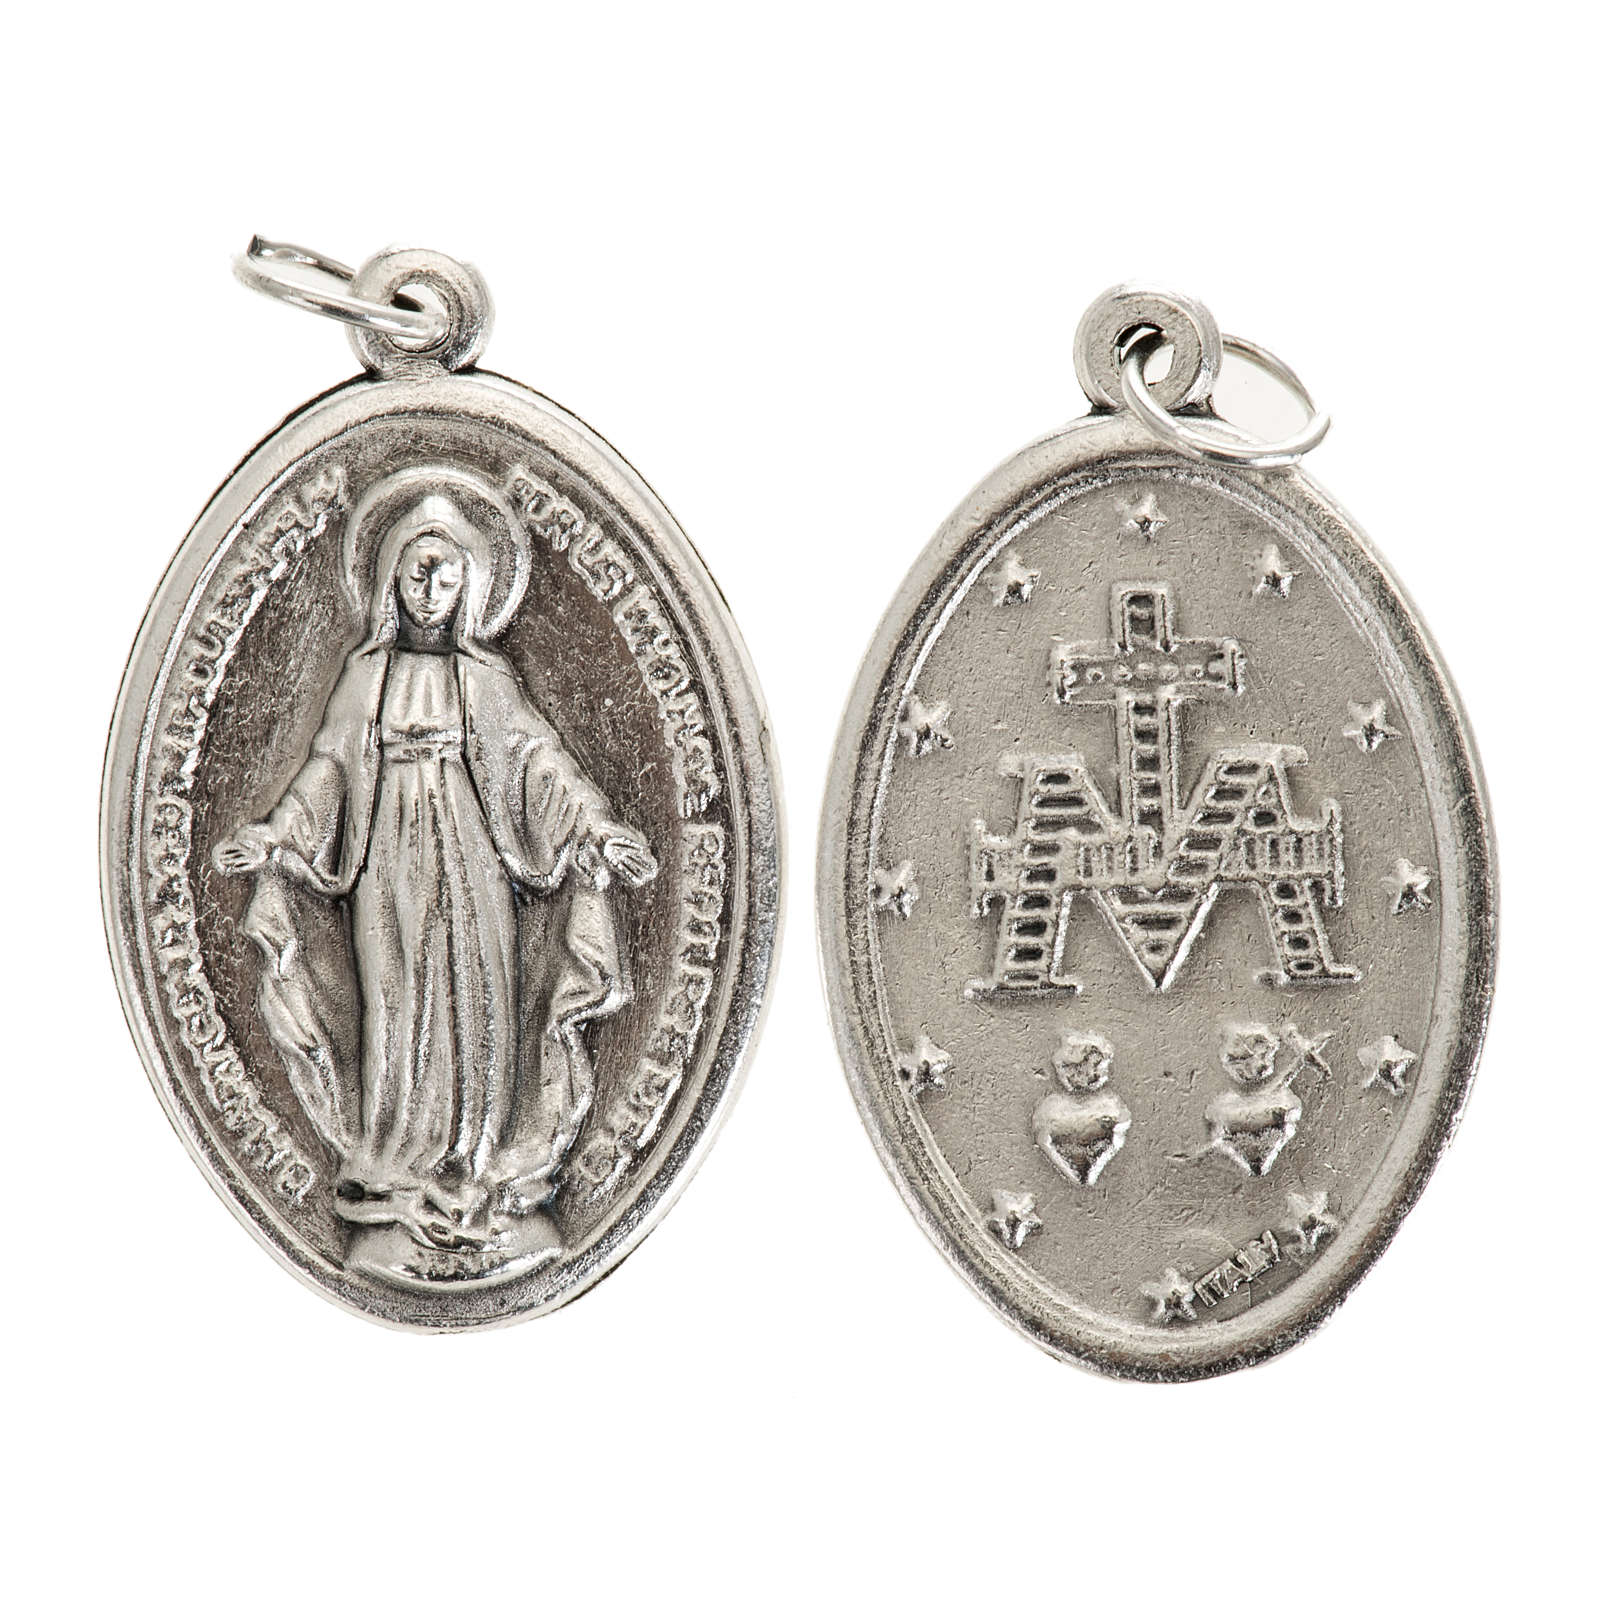 Miraculous Medal, oval in silver metal 30mm 4